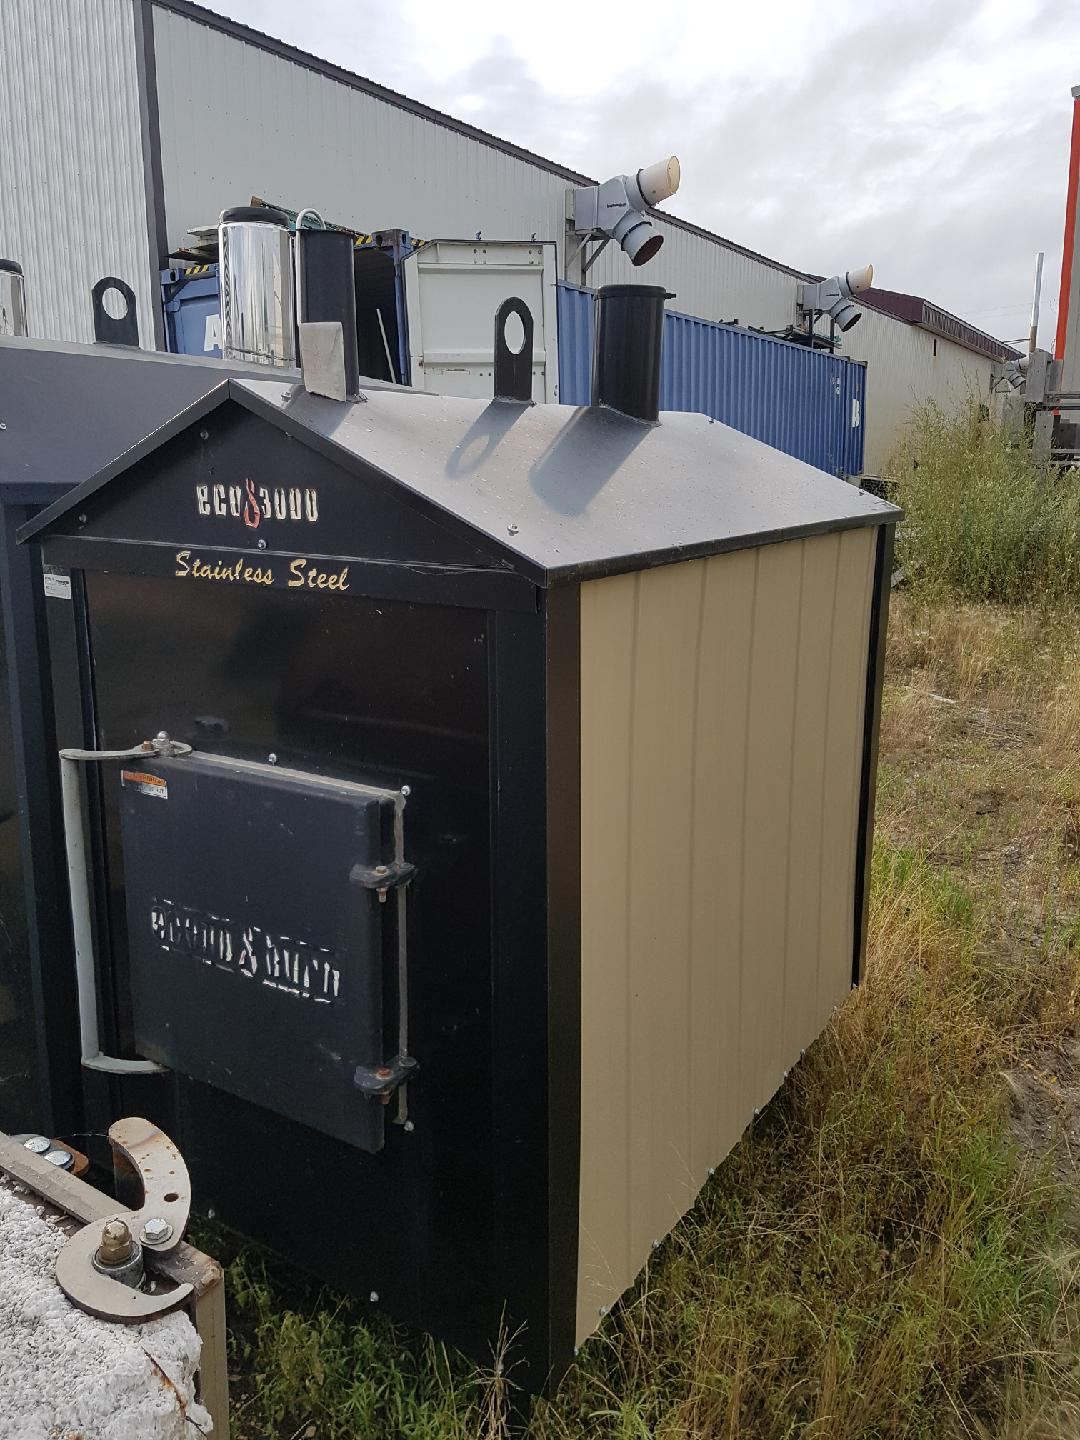 Refurbished Eco 3000 Outdoor Wood Boiler For Sale